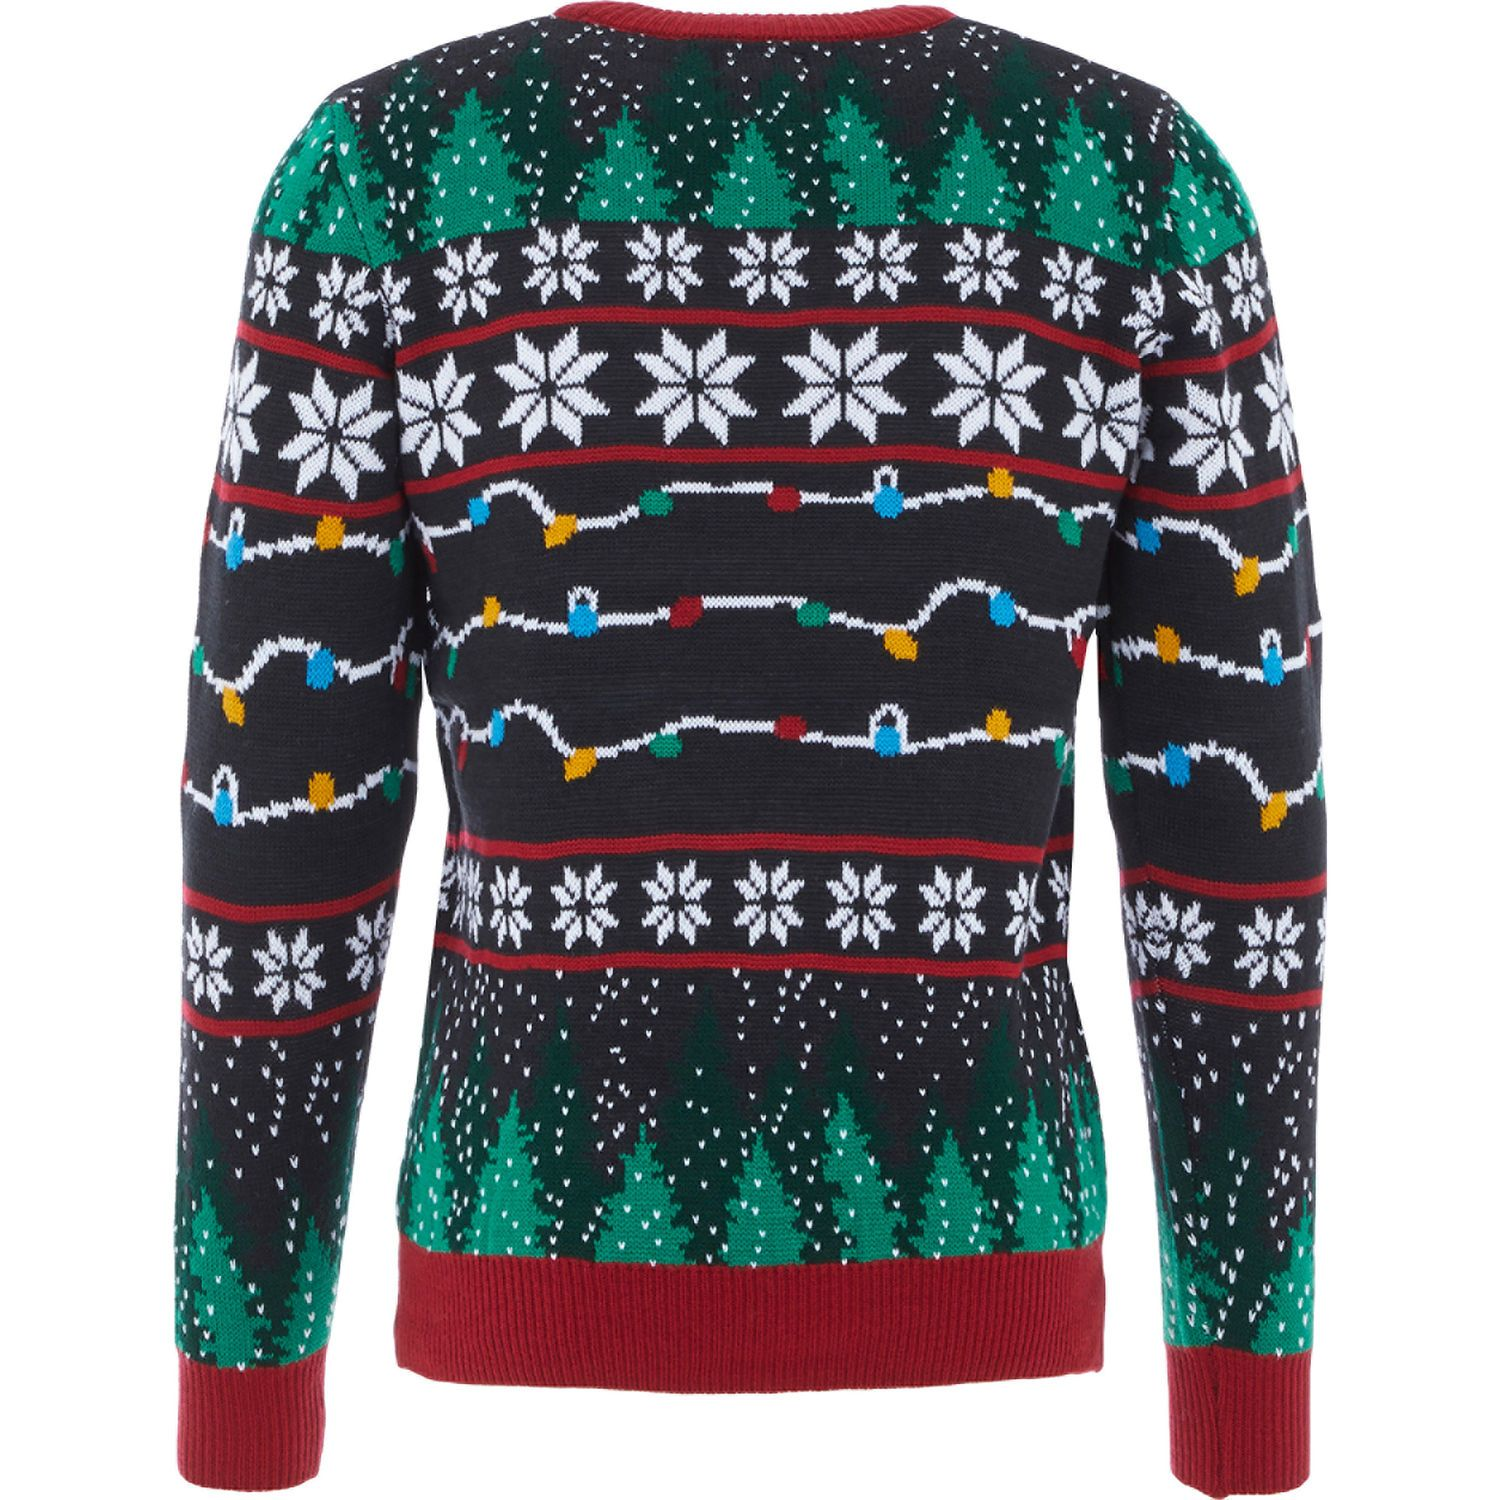 Black Light Up Christmas Jumper Men S Christmas Jumpers